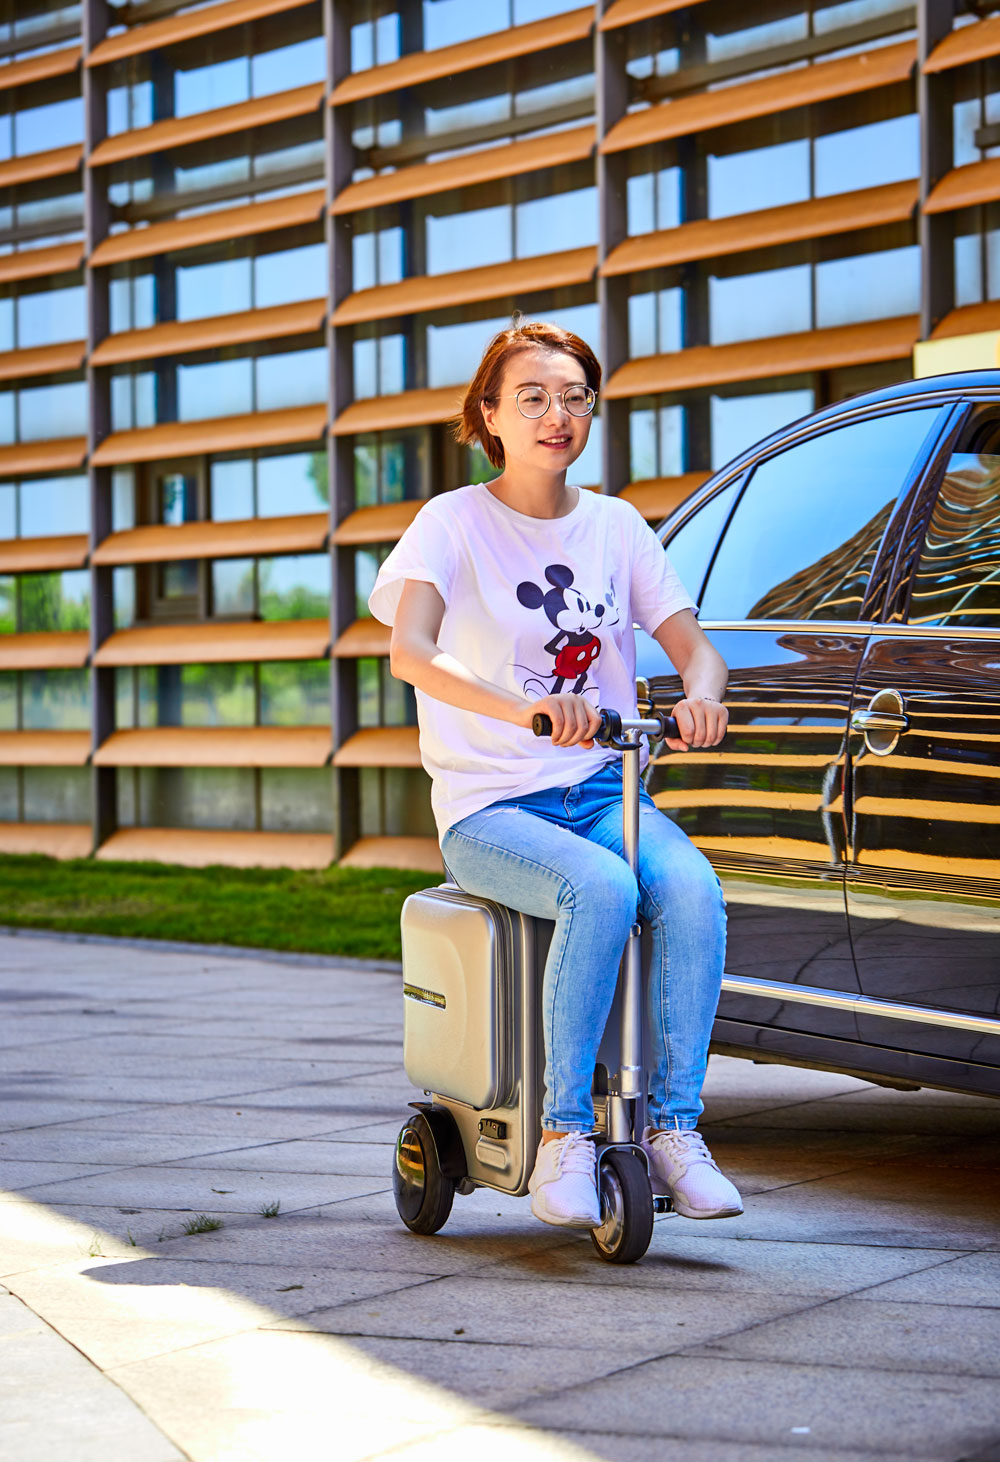 Electric Riding Trolley Travel Suitcase.Luxurious Intelligent Carry on Robot Luggage. ride trunk smart valise boarding bag.--2